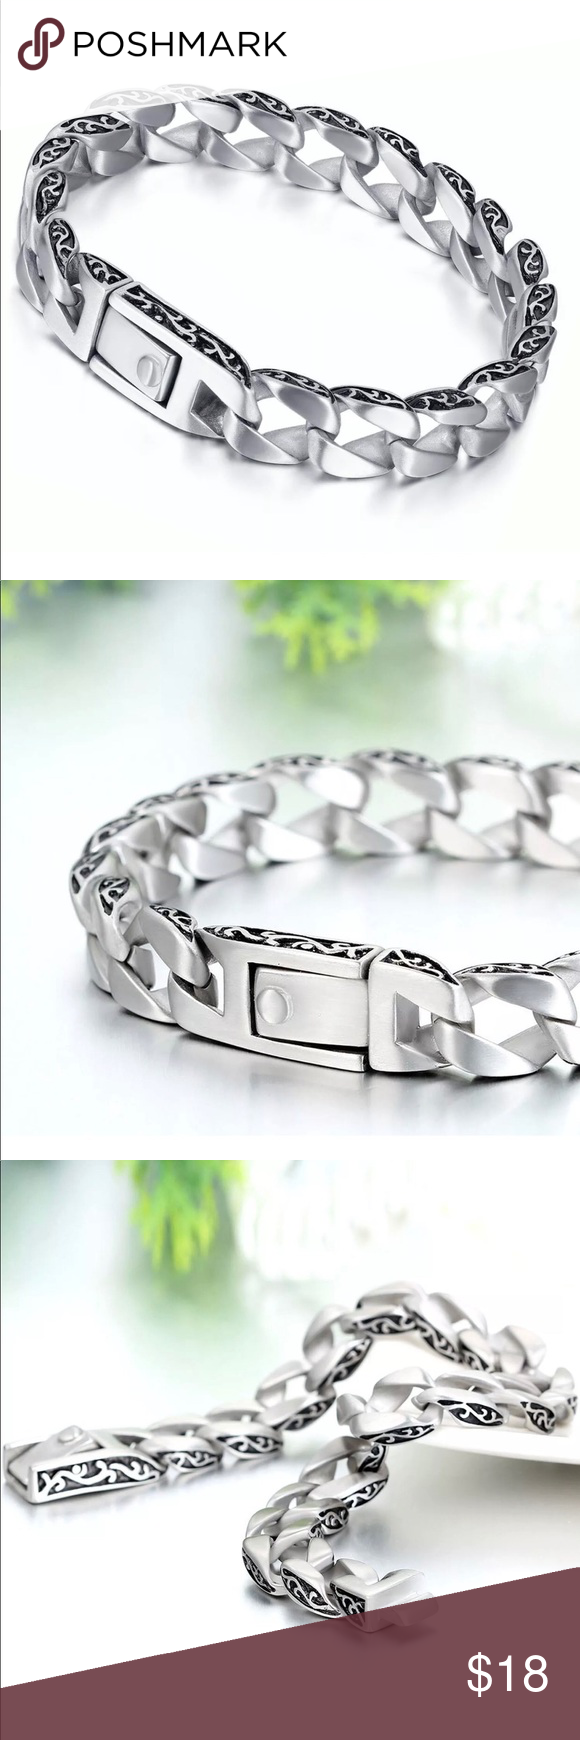 Stainless steel bracelet mens cuban chain link nwt stainless steel